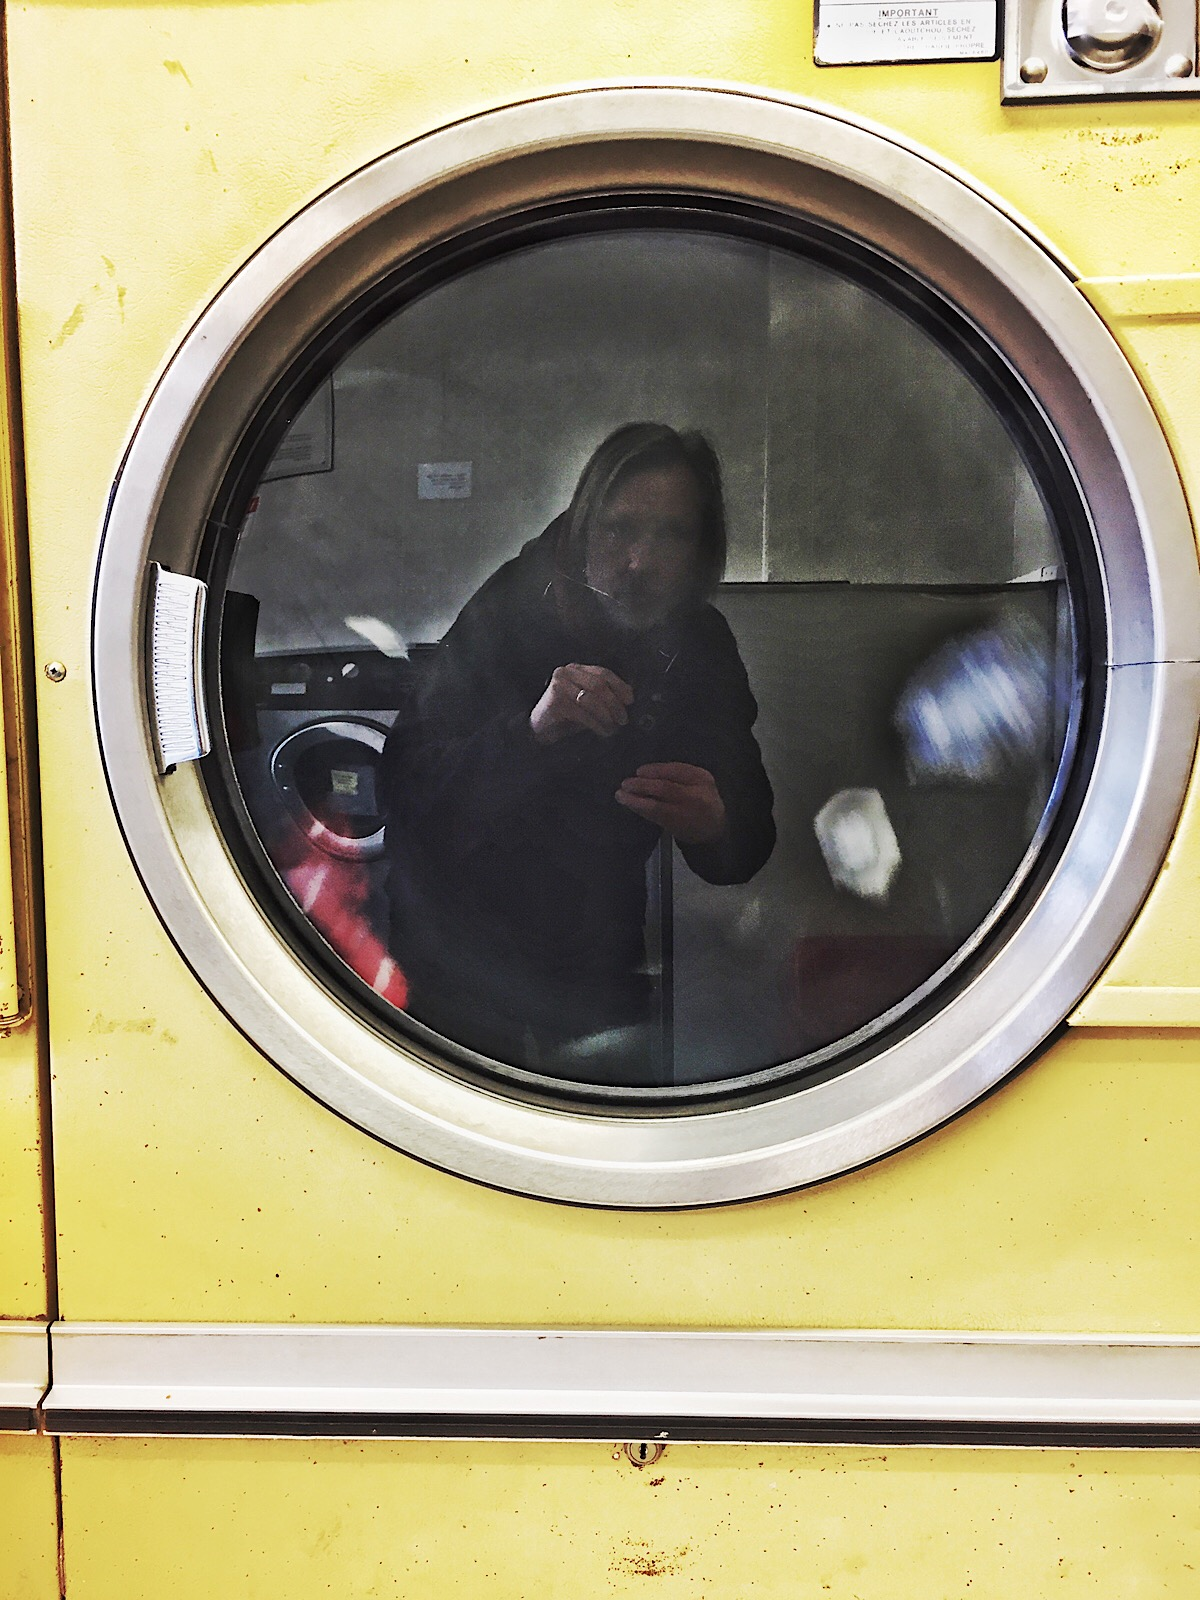 iPhone6 self portrait in the tumble dryer.